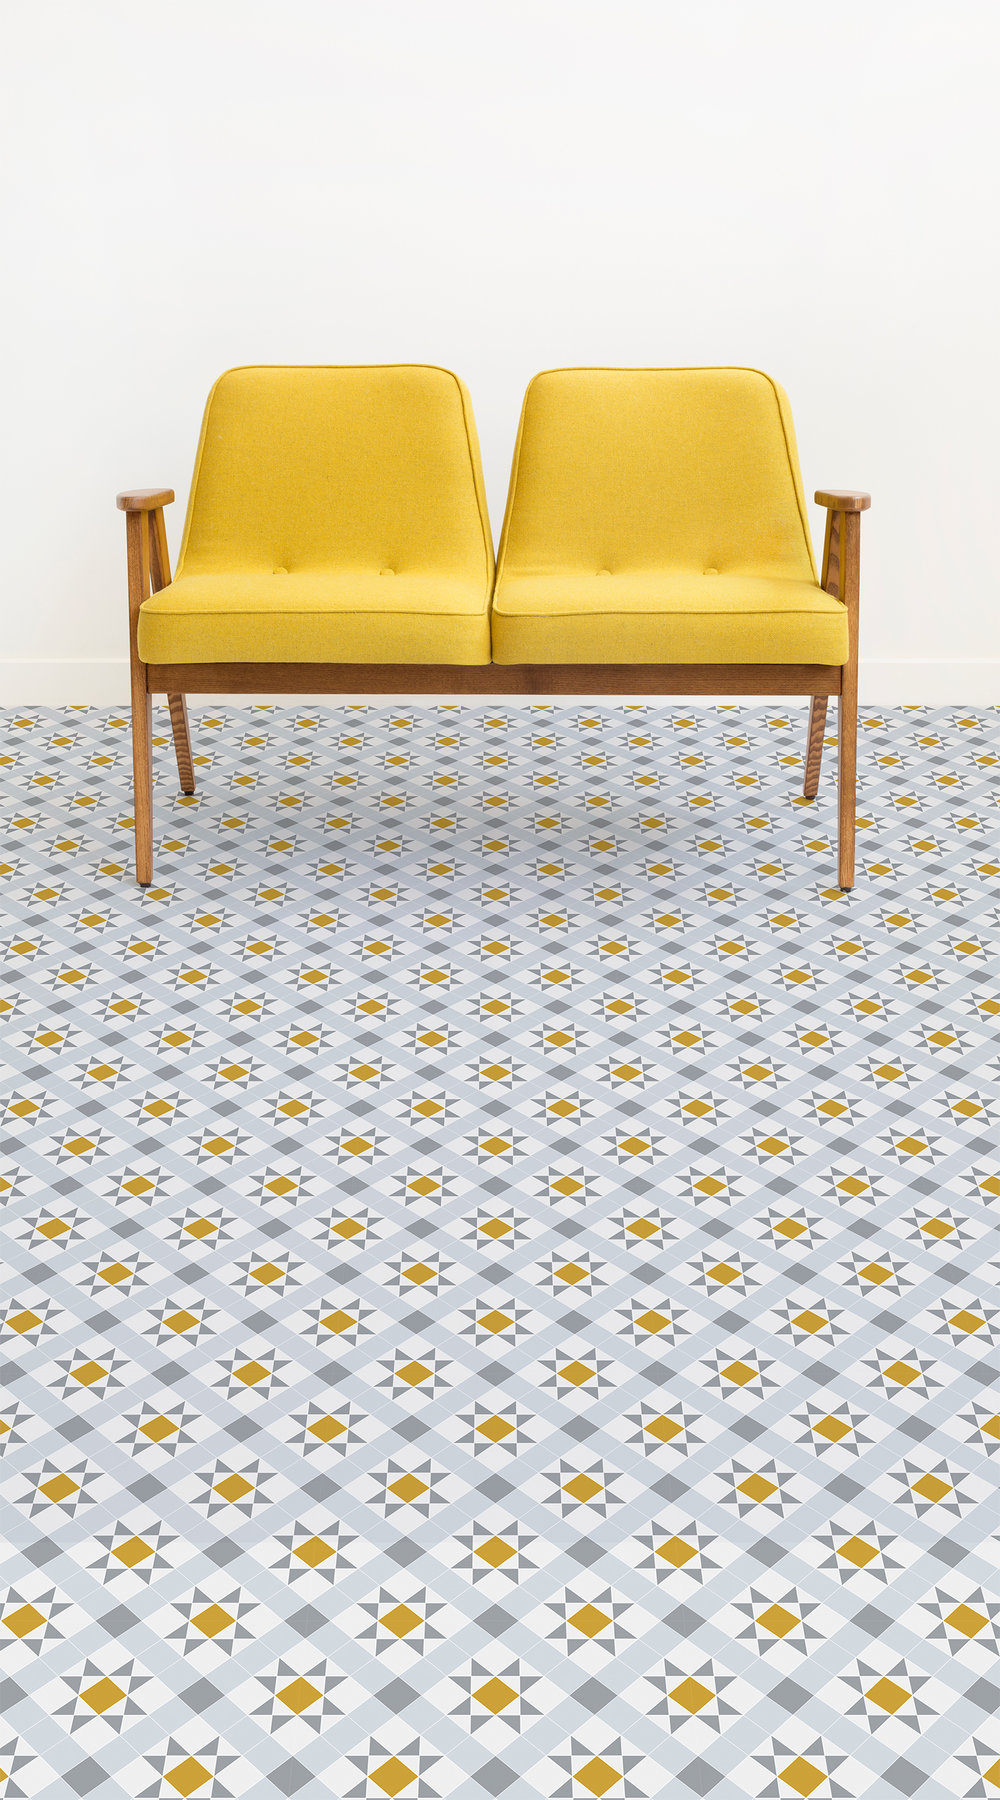 Victorian-Tiles-3-Grey-and-Yellow-Lifestyle-Web.jpg